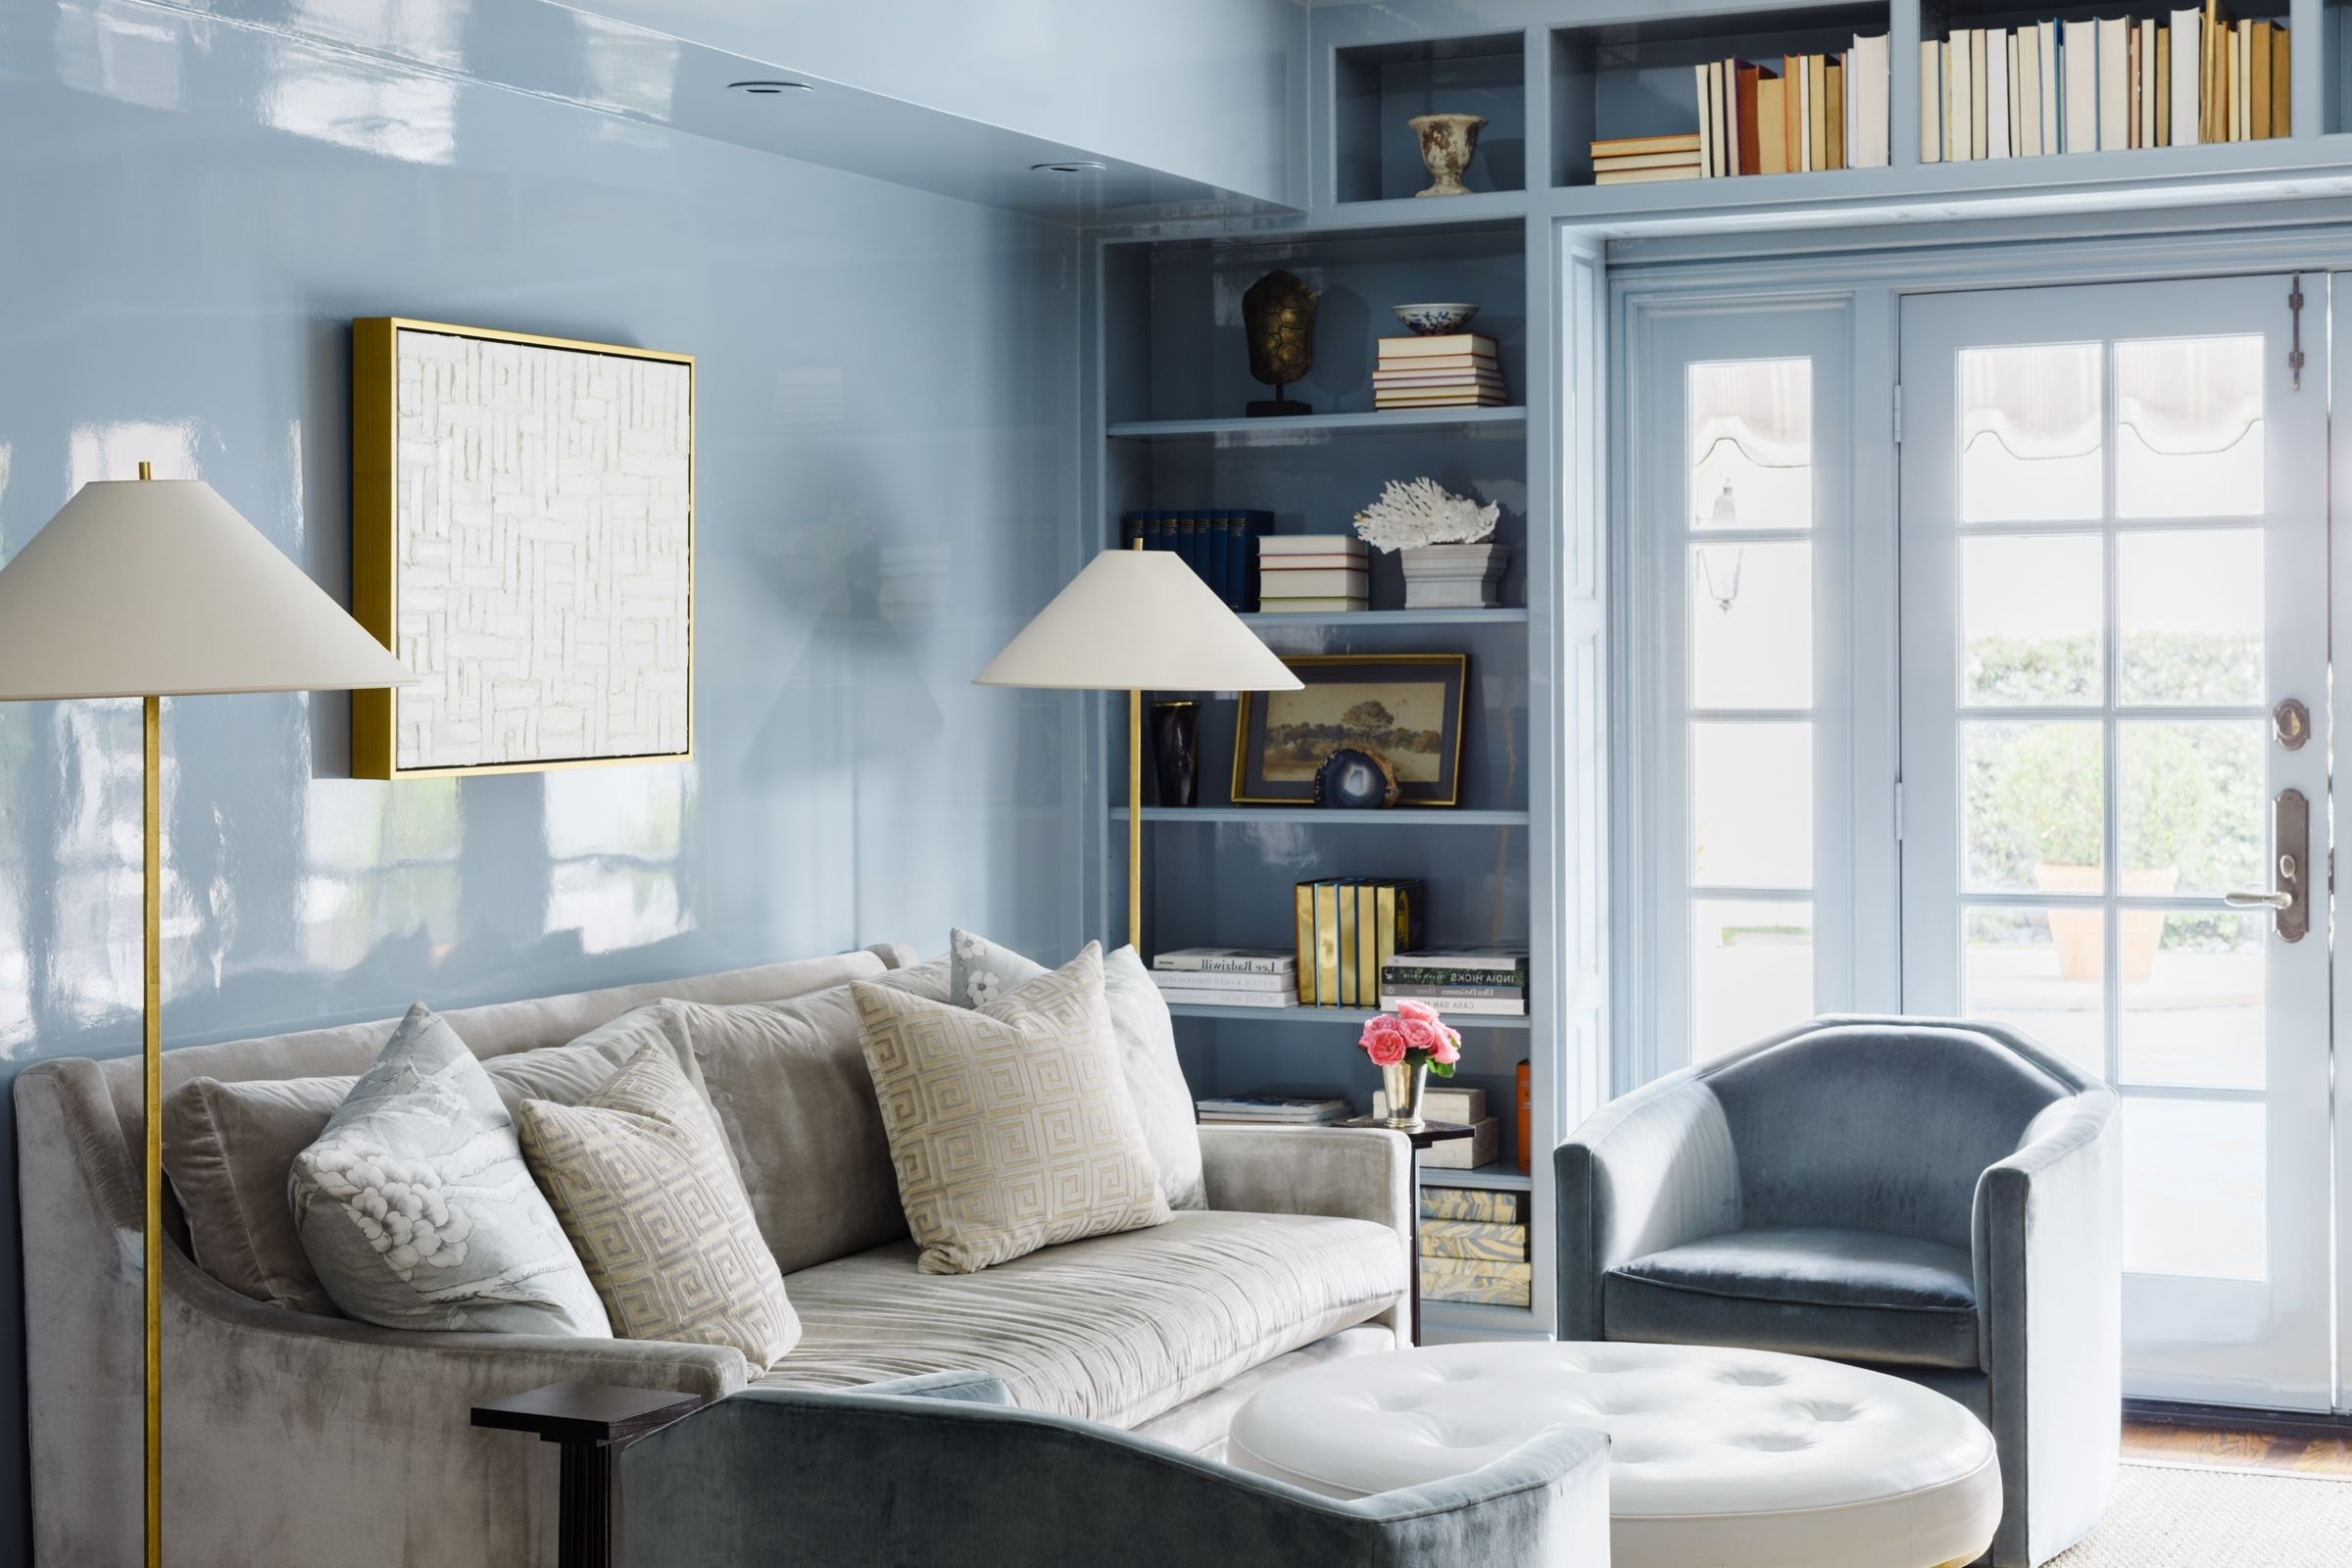 25 Best Blue Paint Colors 2020 – Designers' Favorite Blue Paints 20+ Farrow And Ball Light Blue Living Room Inspirations